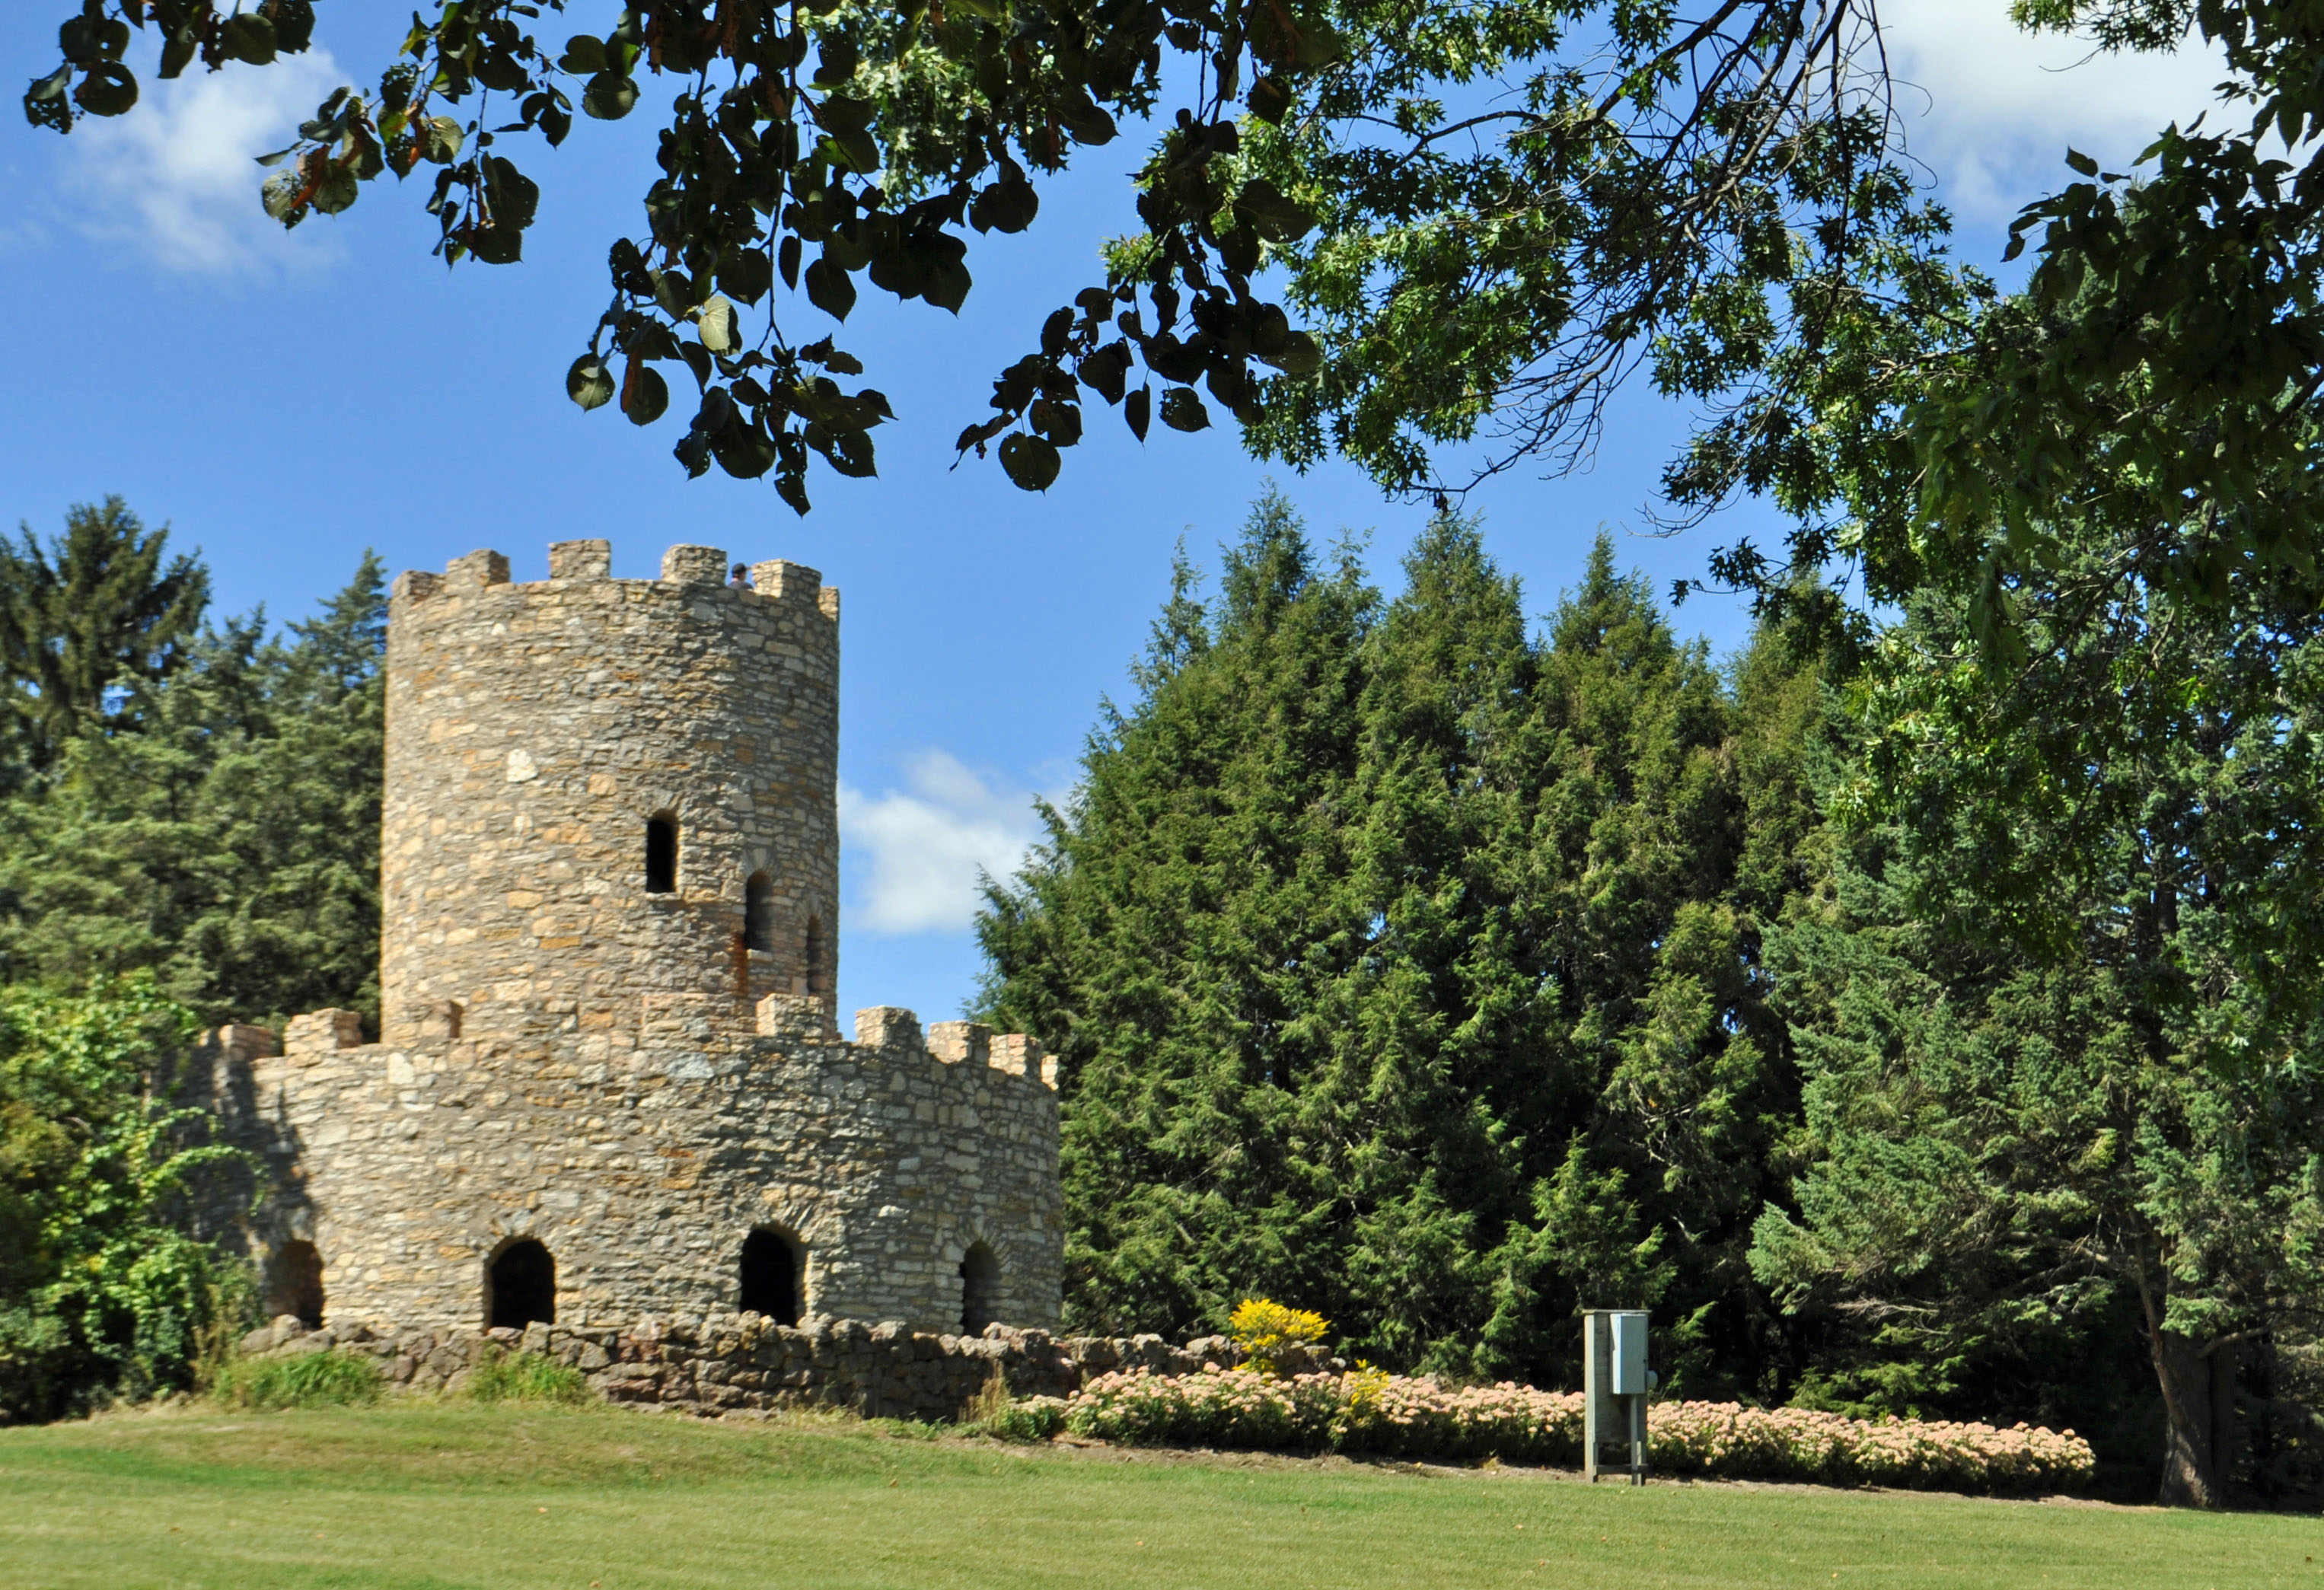 Eagle_Point_Park_Castle.jpg